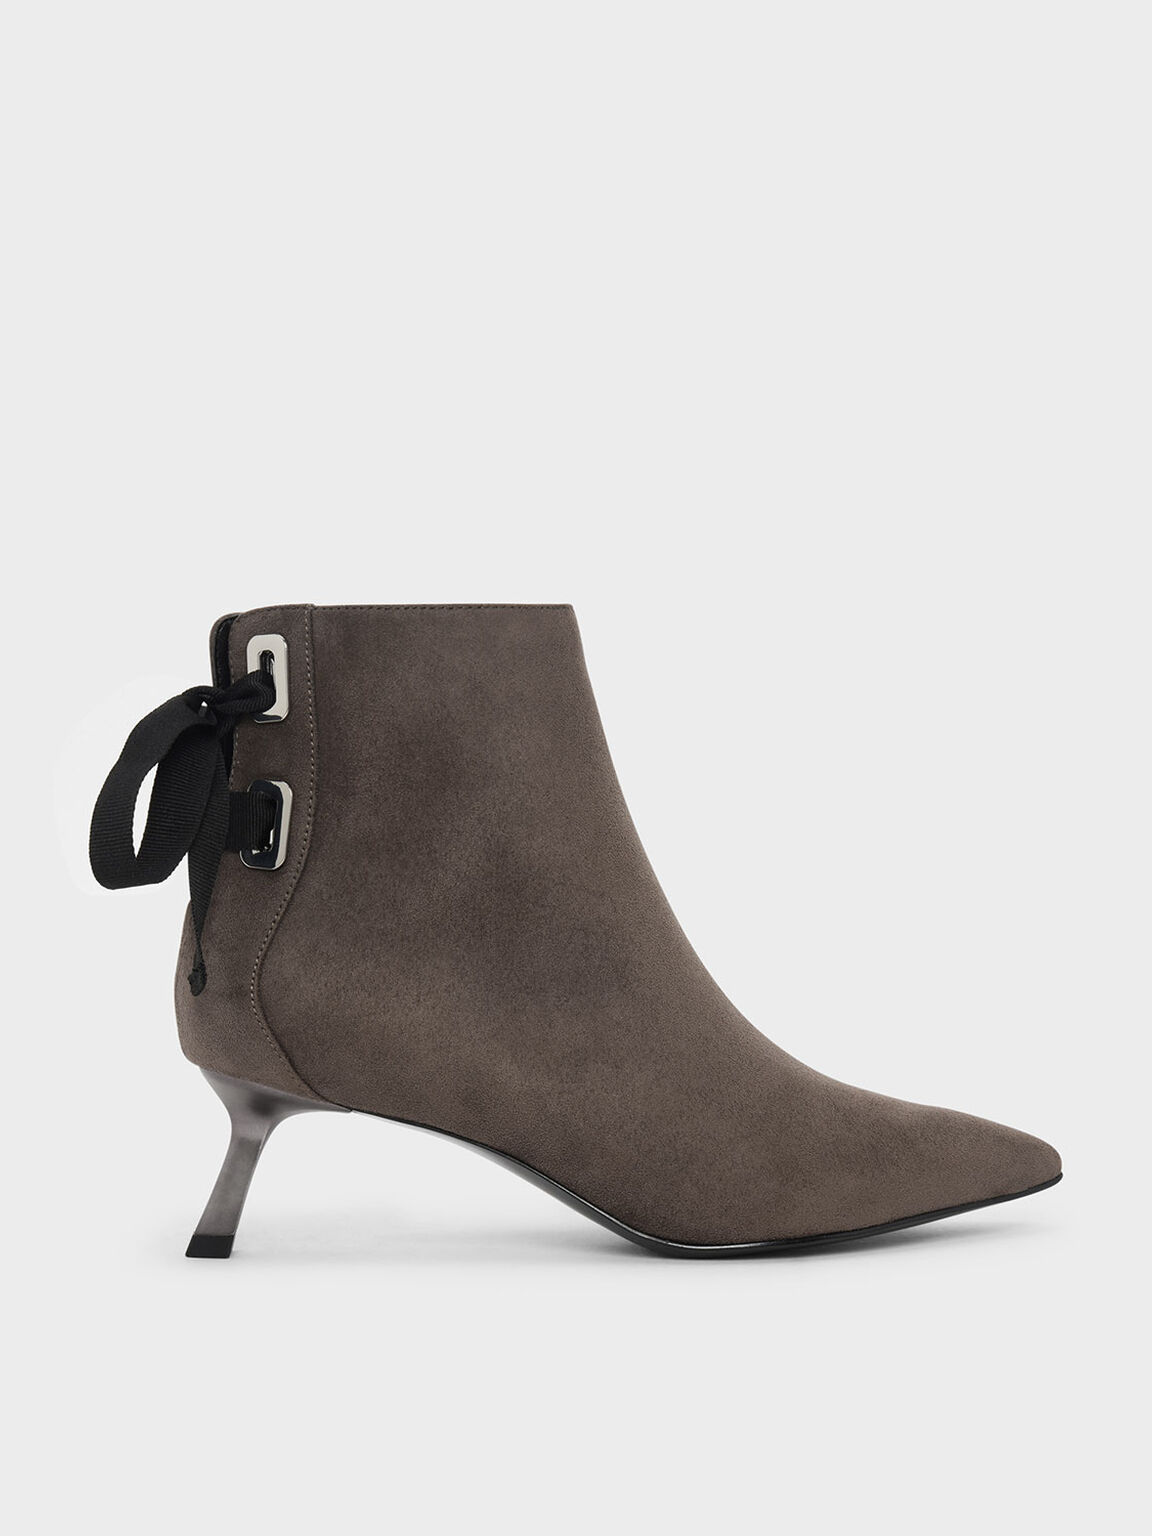 Slant Heel Ankle Boots, Taupe, hi-res